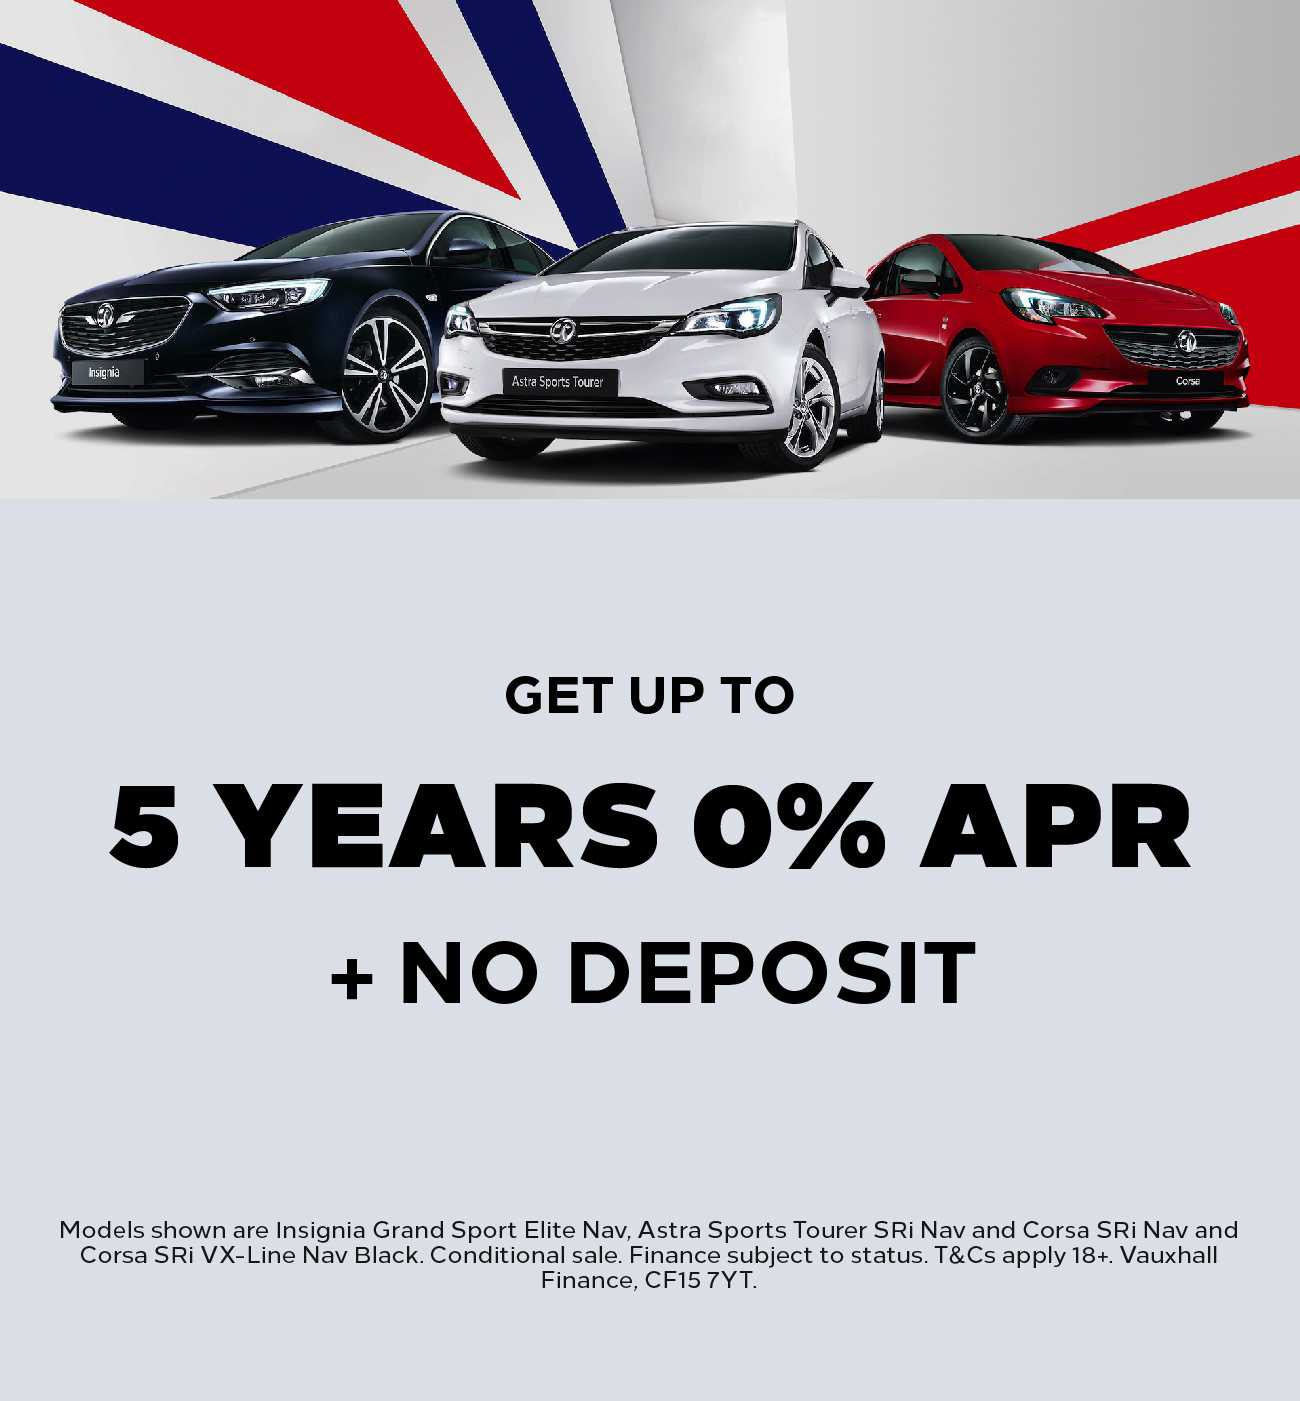 Vauxhall 5 year 0% BB